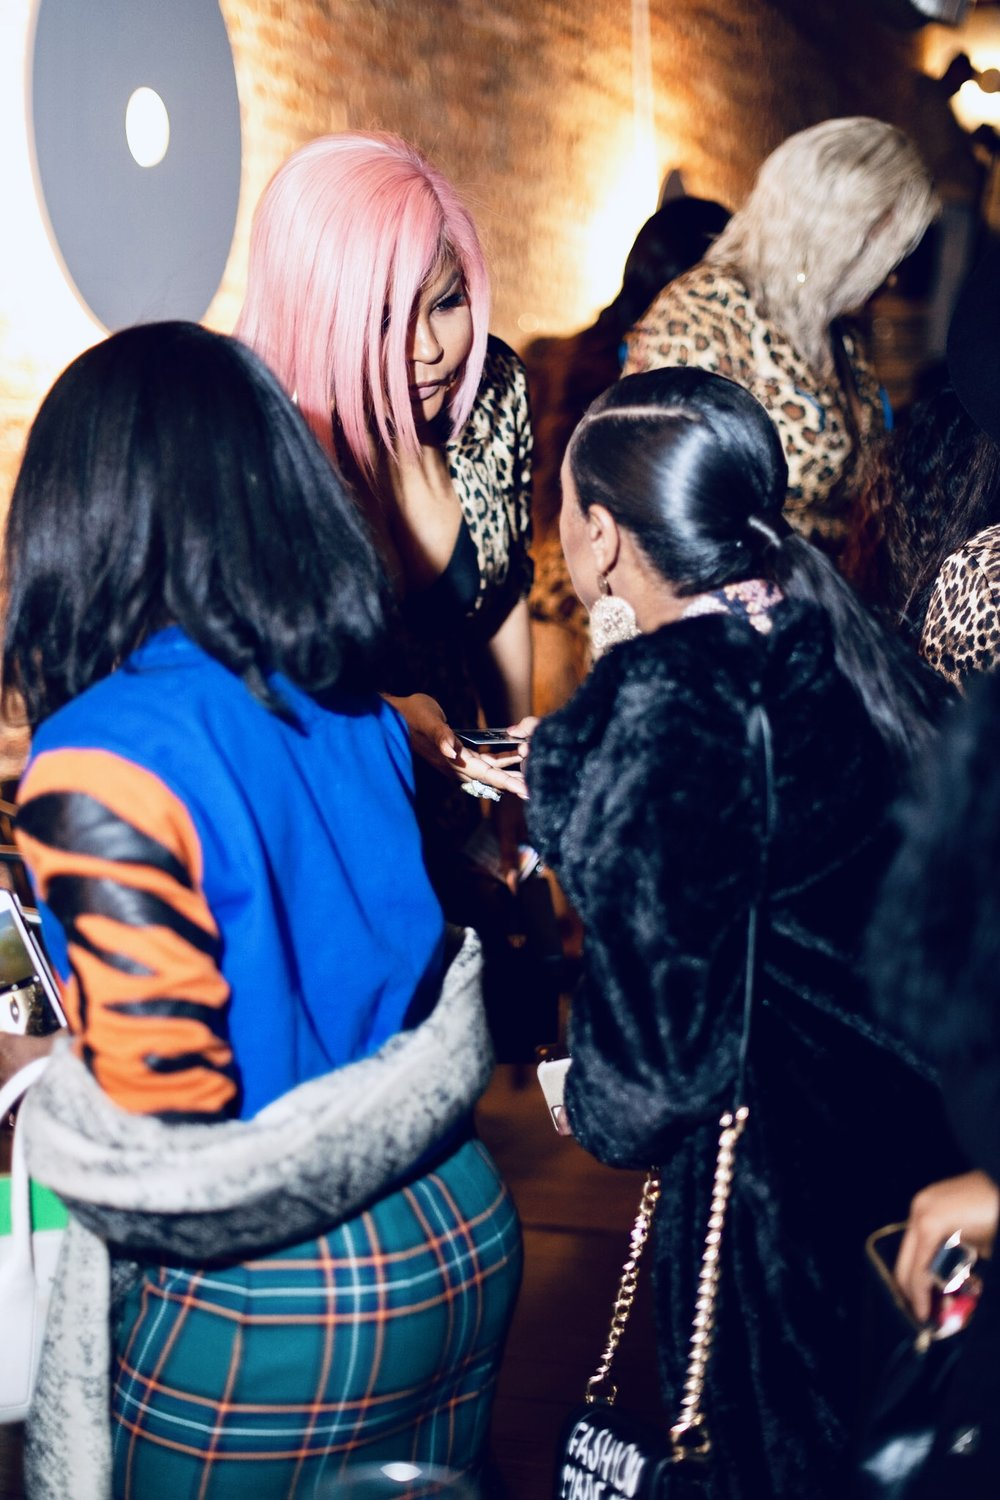 Me introducing myself to legendary stylist Misa Hylton at the  Convos with Claire networking event  in December 2018.